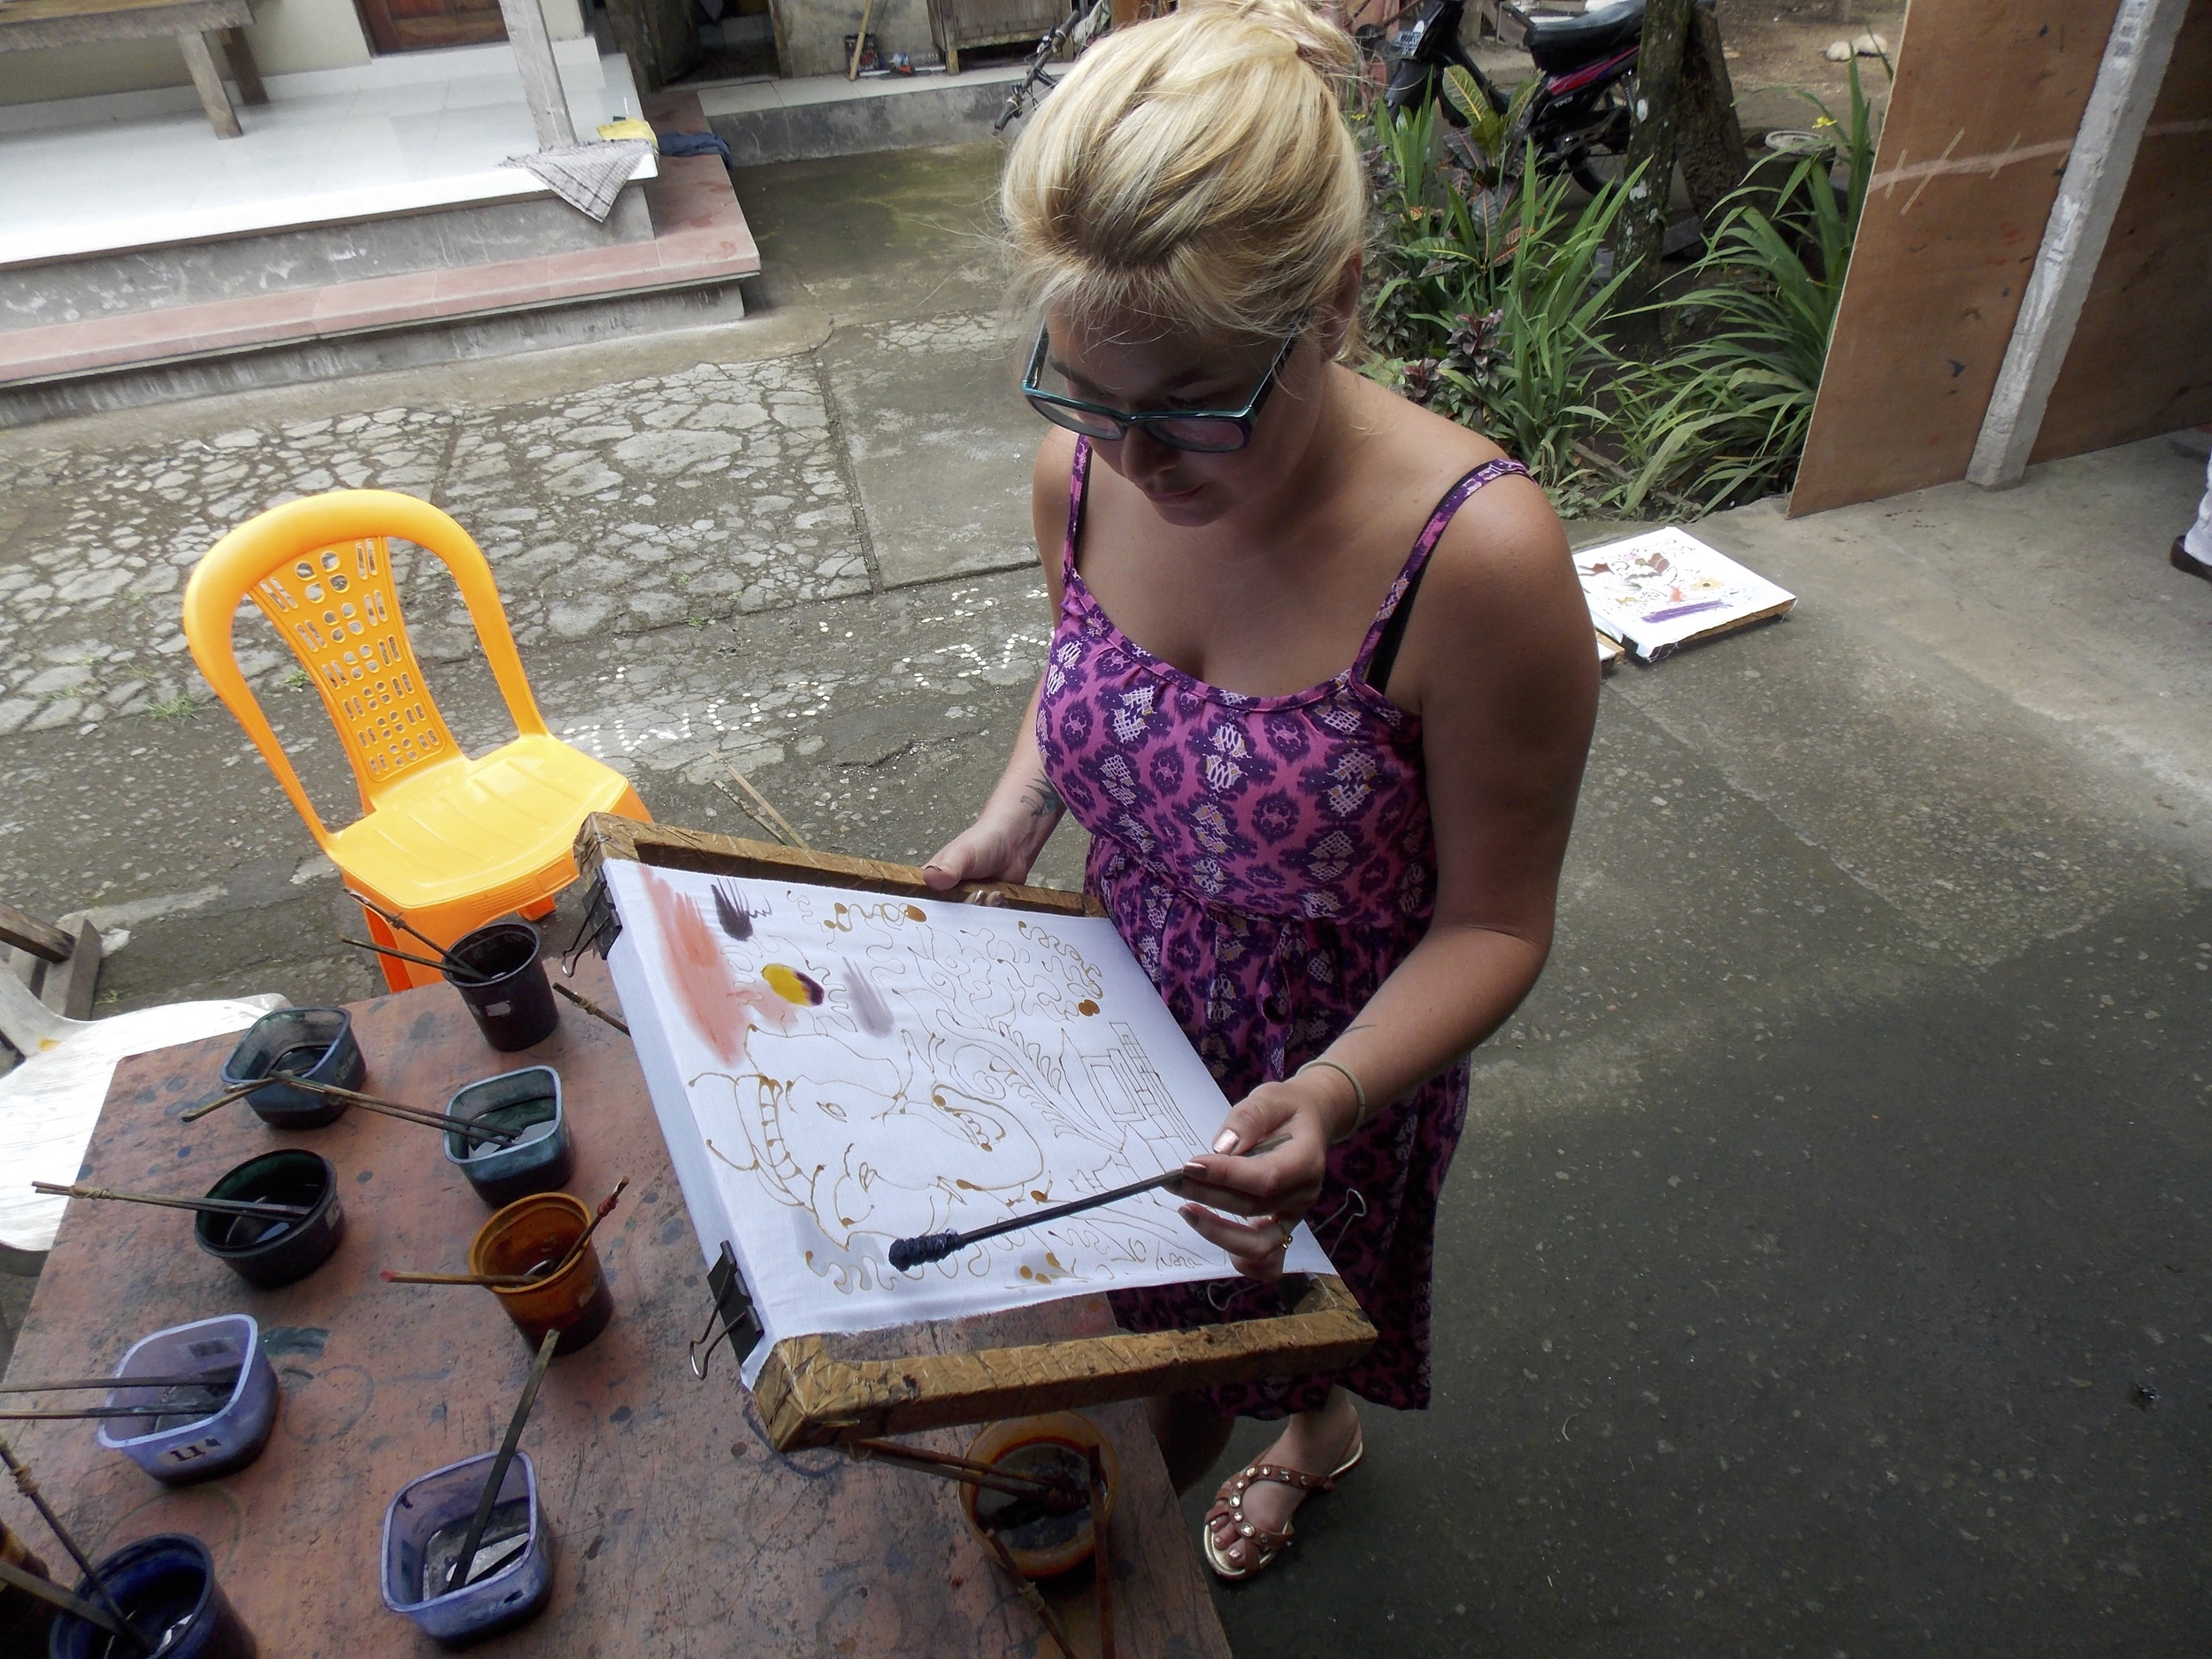 Painting with Wax for Batik